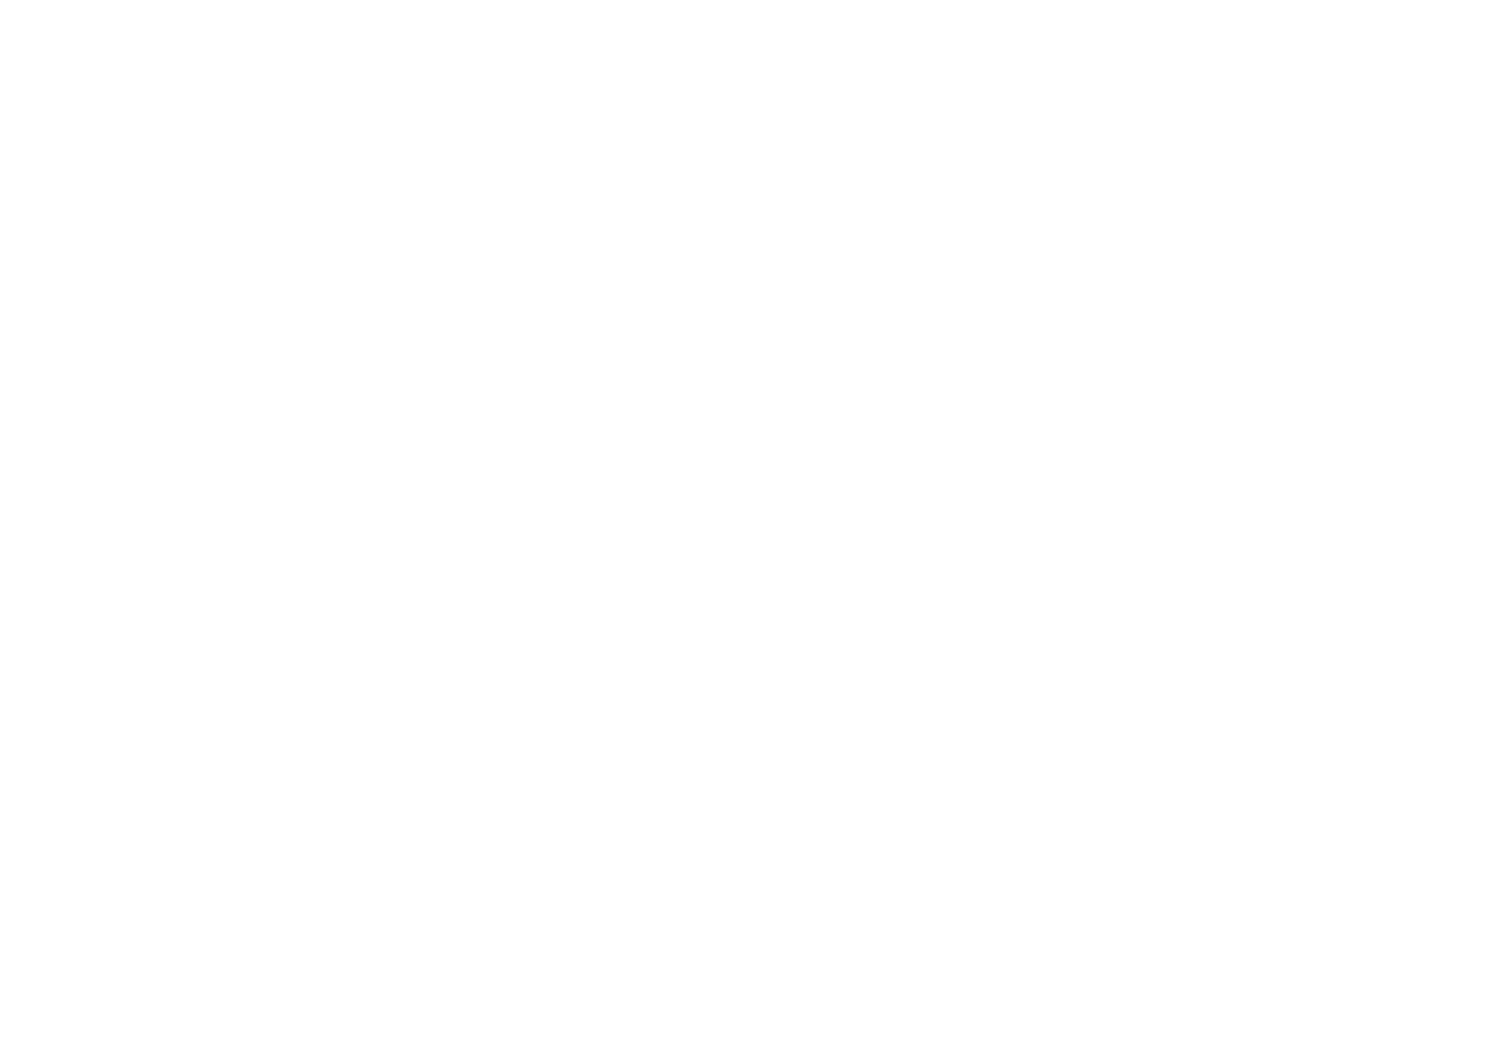 Insight Mindfulness Education